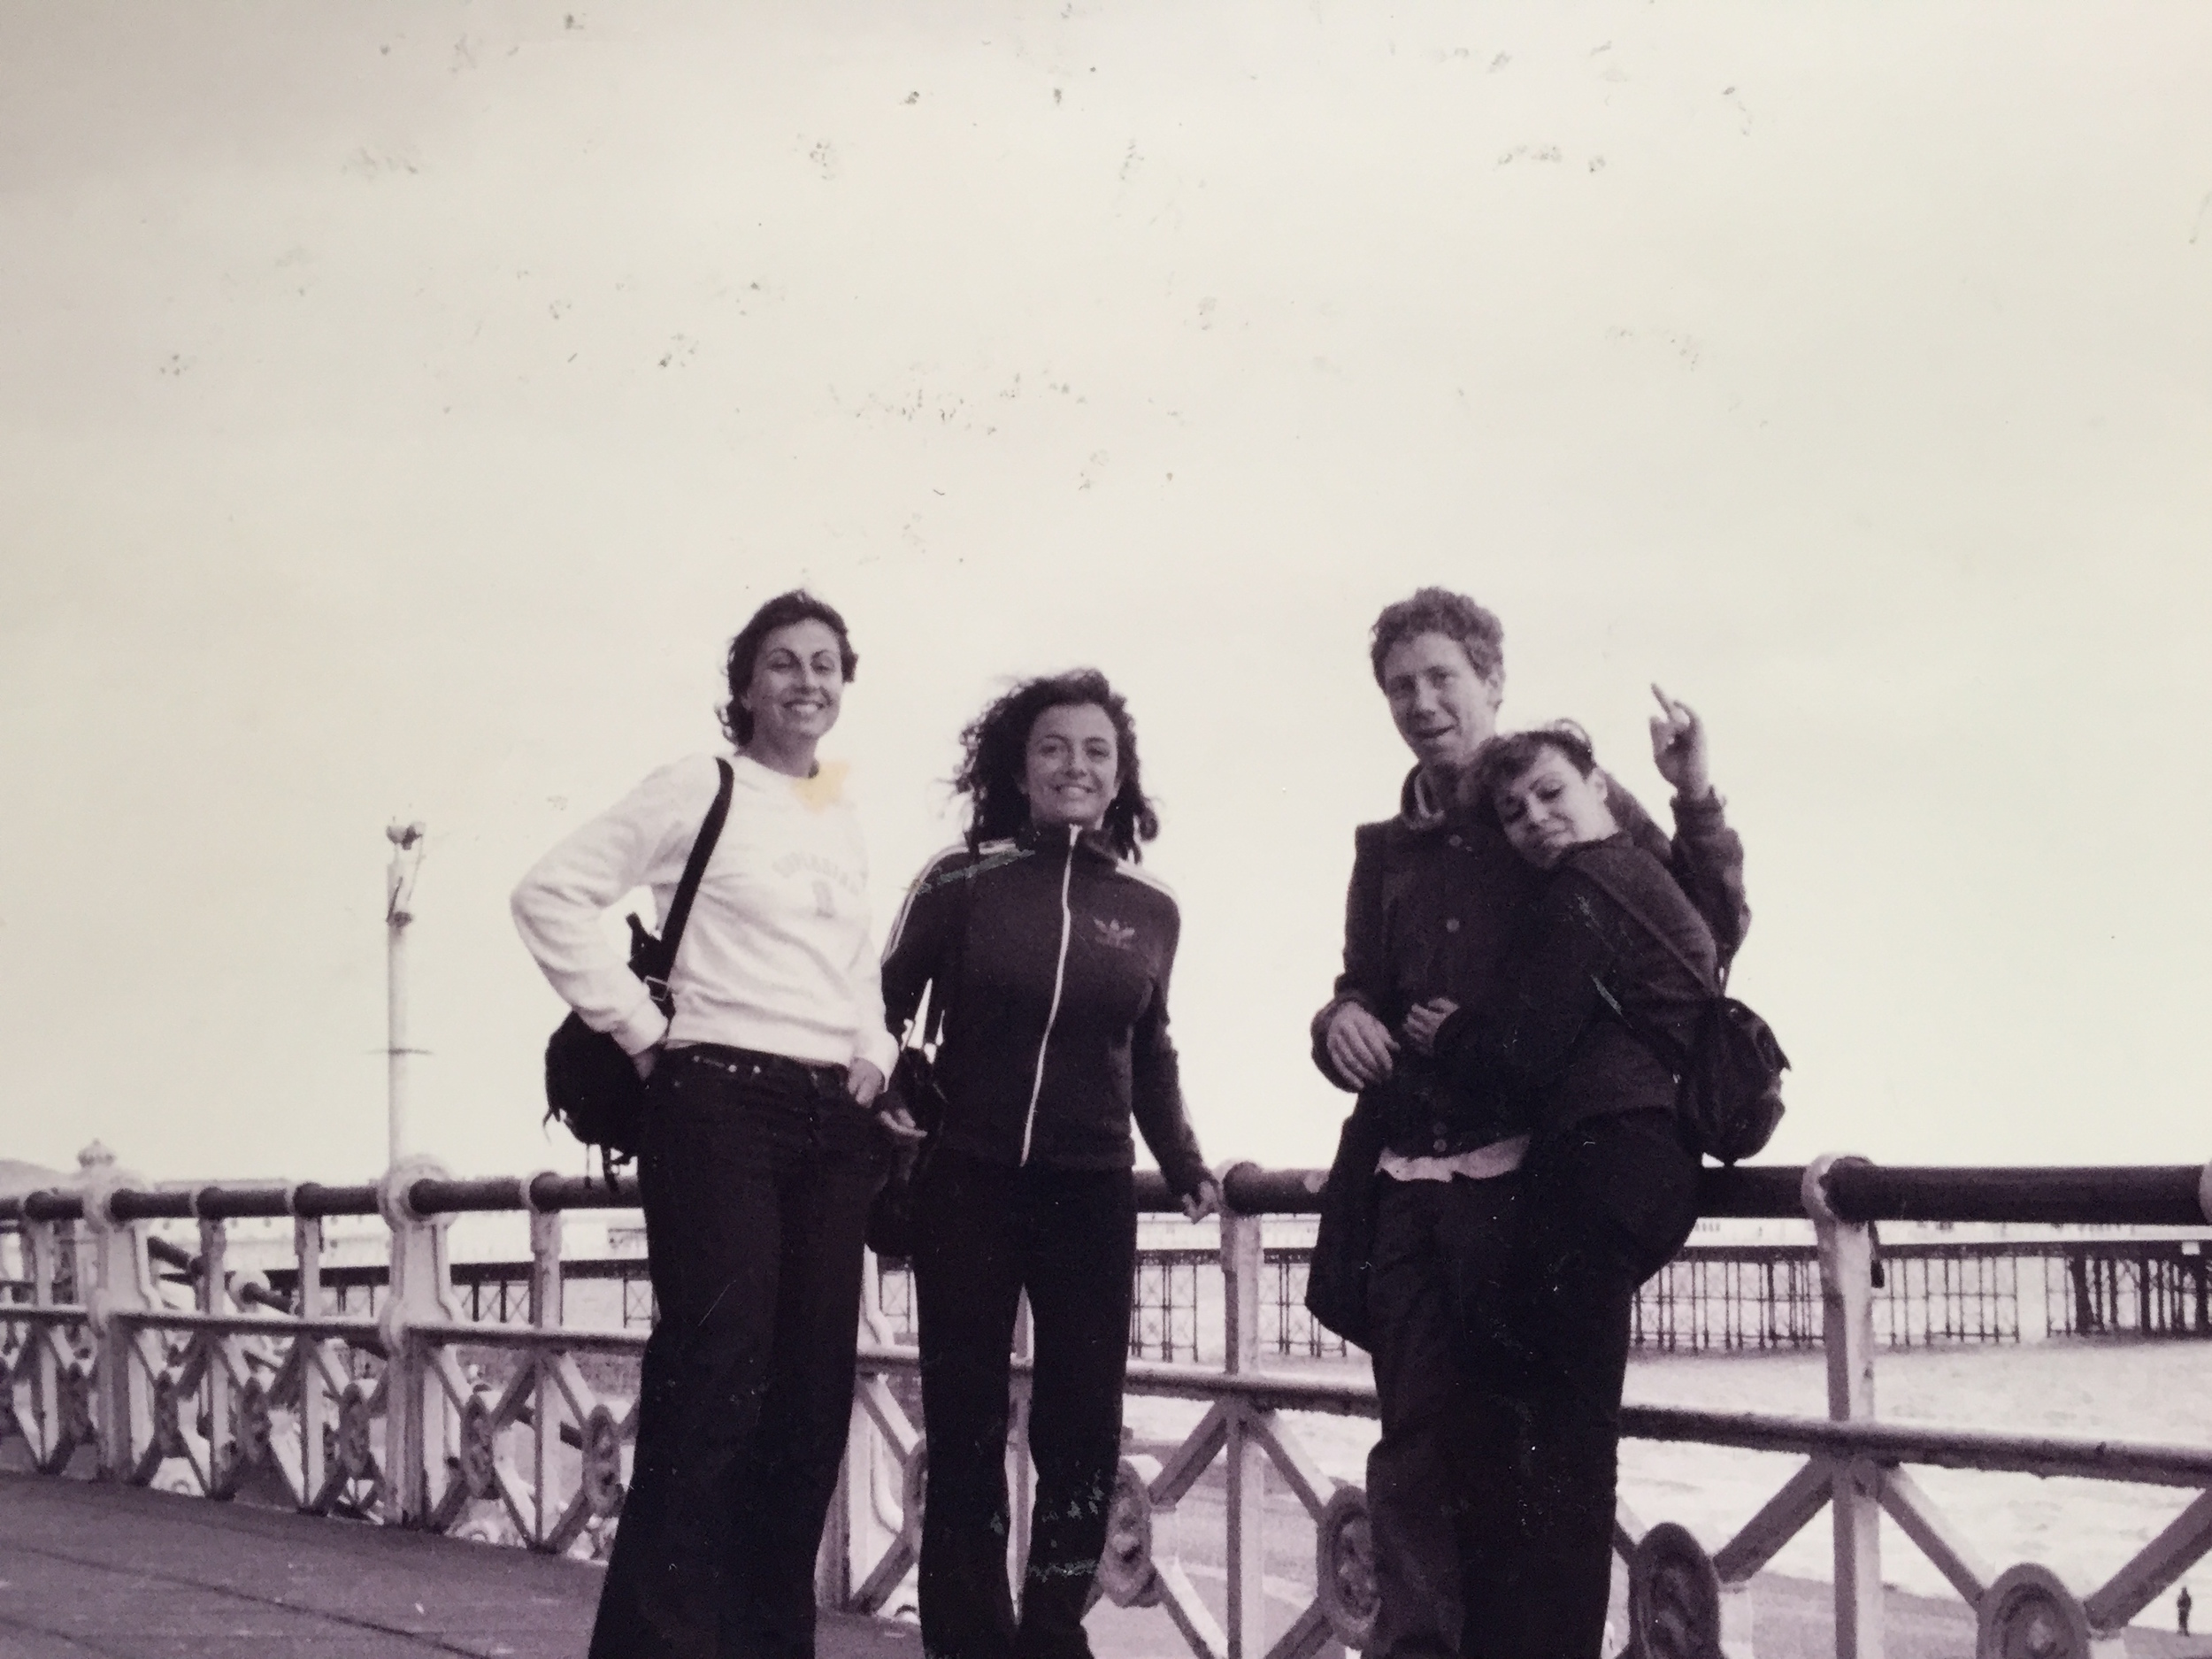 Summer breeze at Brighton's Pier in 2001